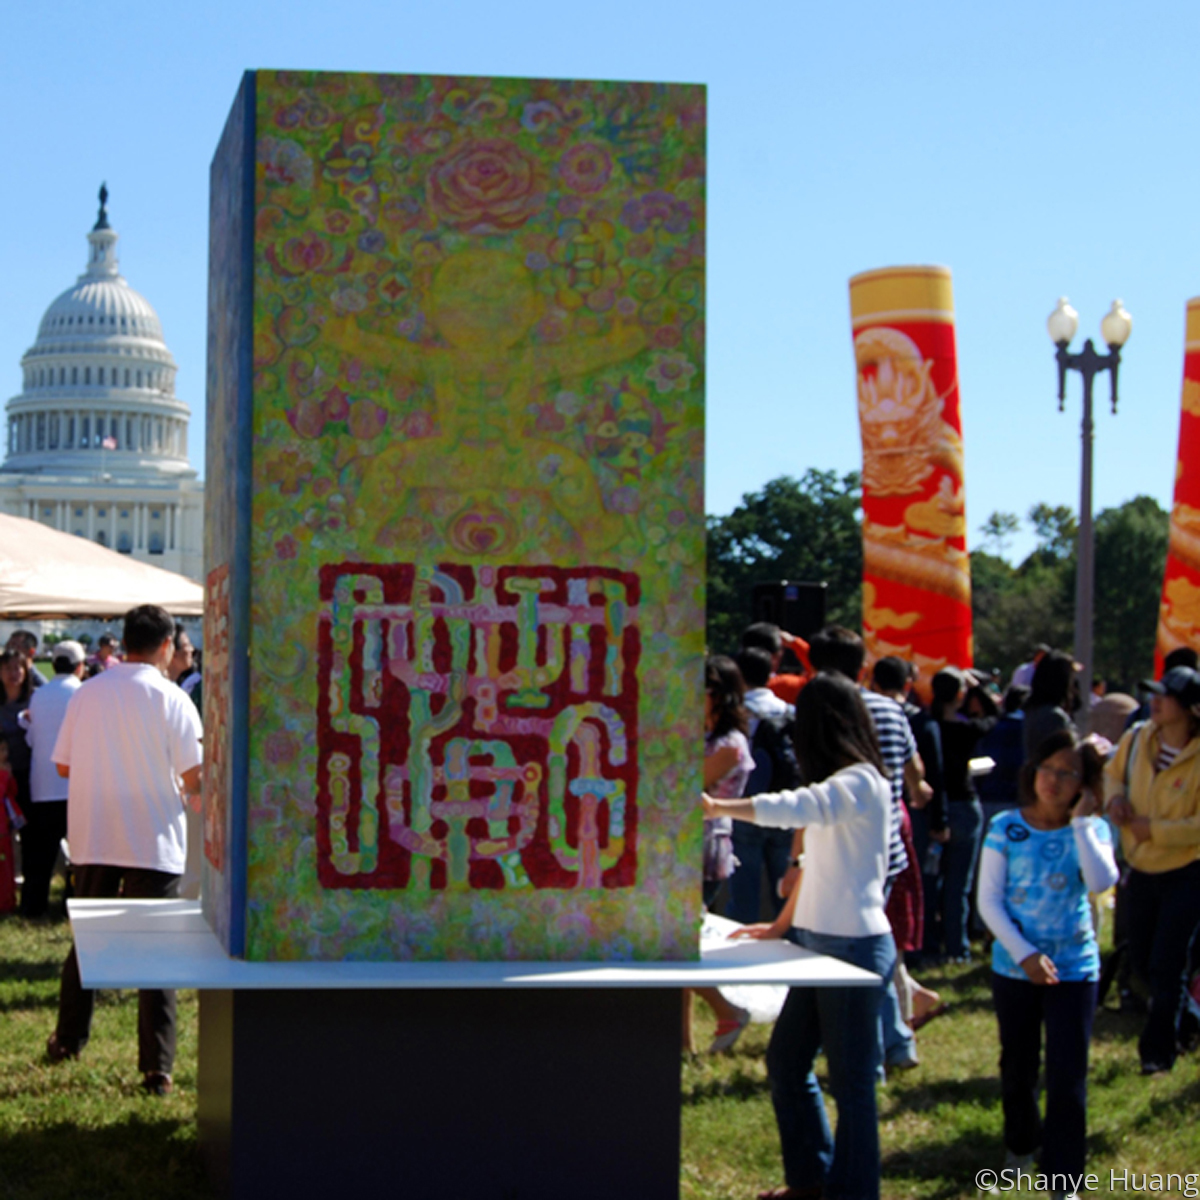 Chinese Cultural Festival at the Capital in DC (large view)